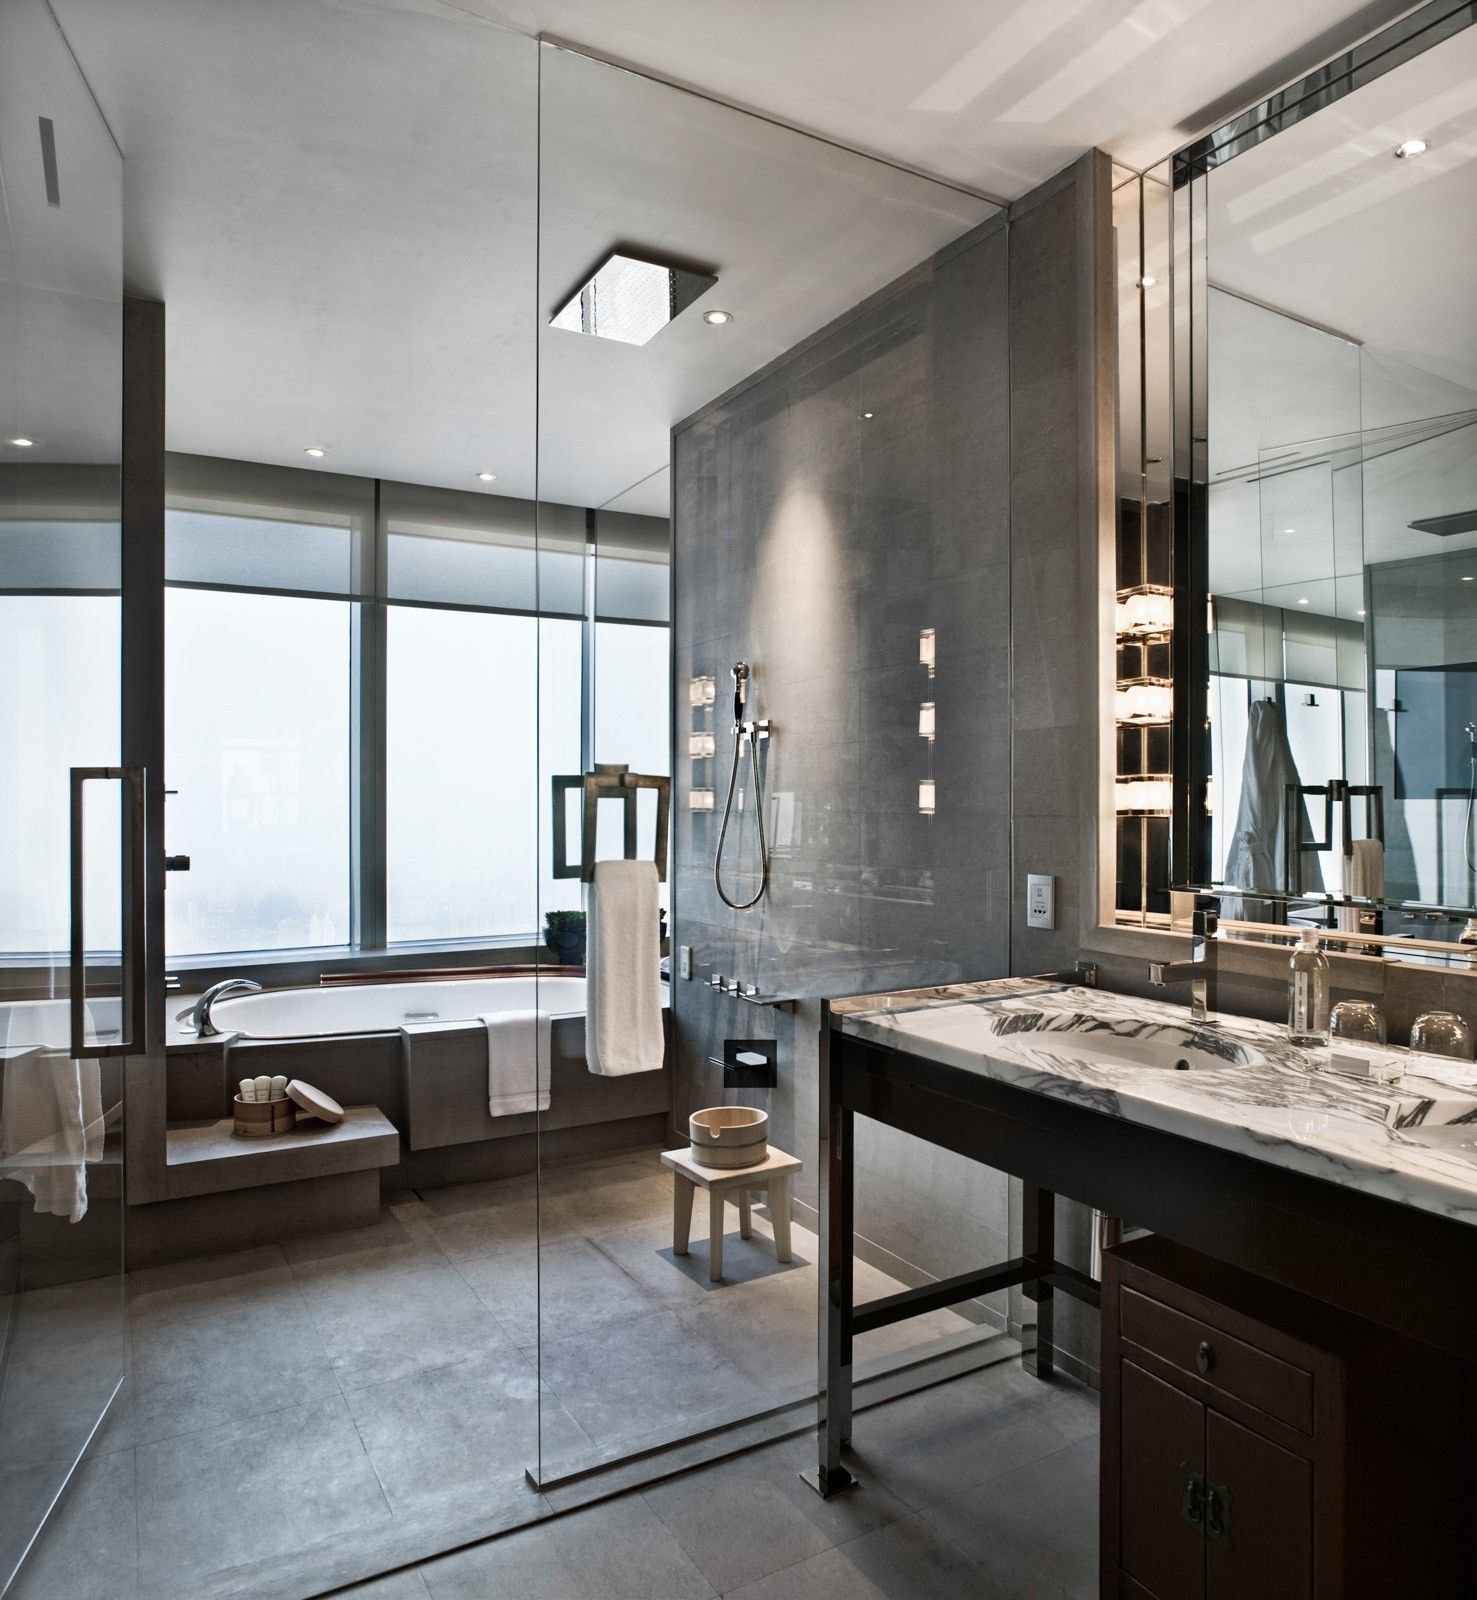 Hotel Bathroom Layout: This Is A Very Cool And Unique Bathroom Layout. Dig The